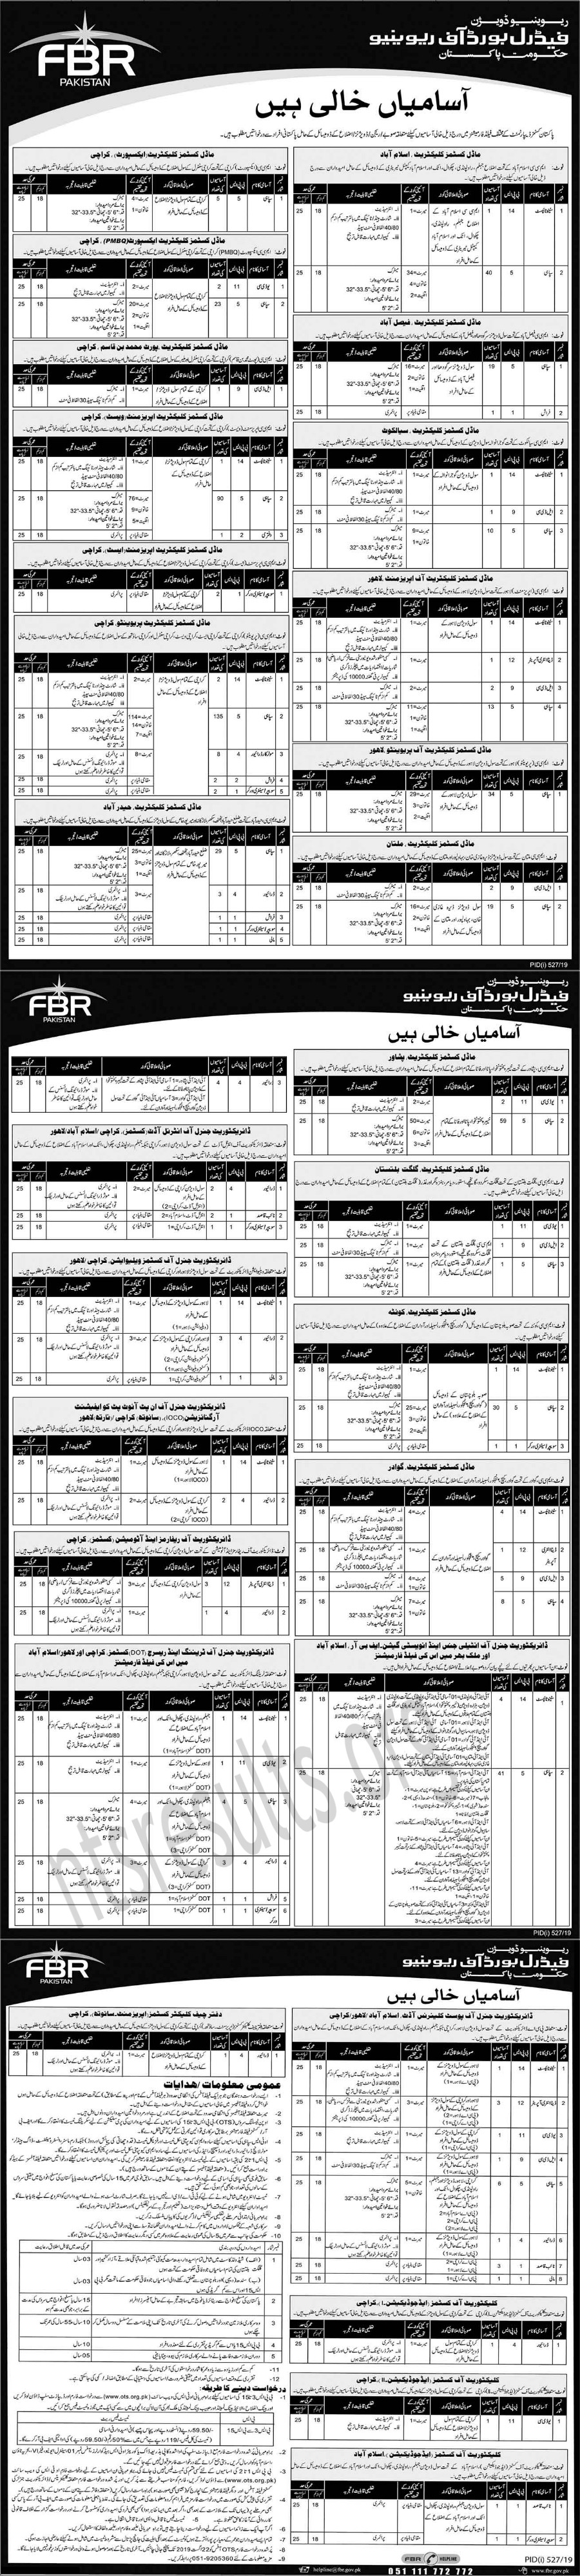 FBR Federal Board of Revenue Jobs OTS Test Roll No Slip